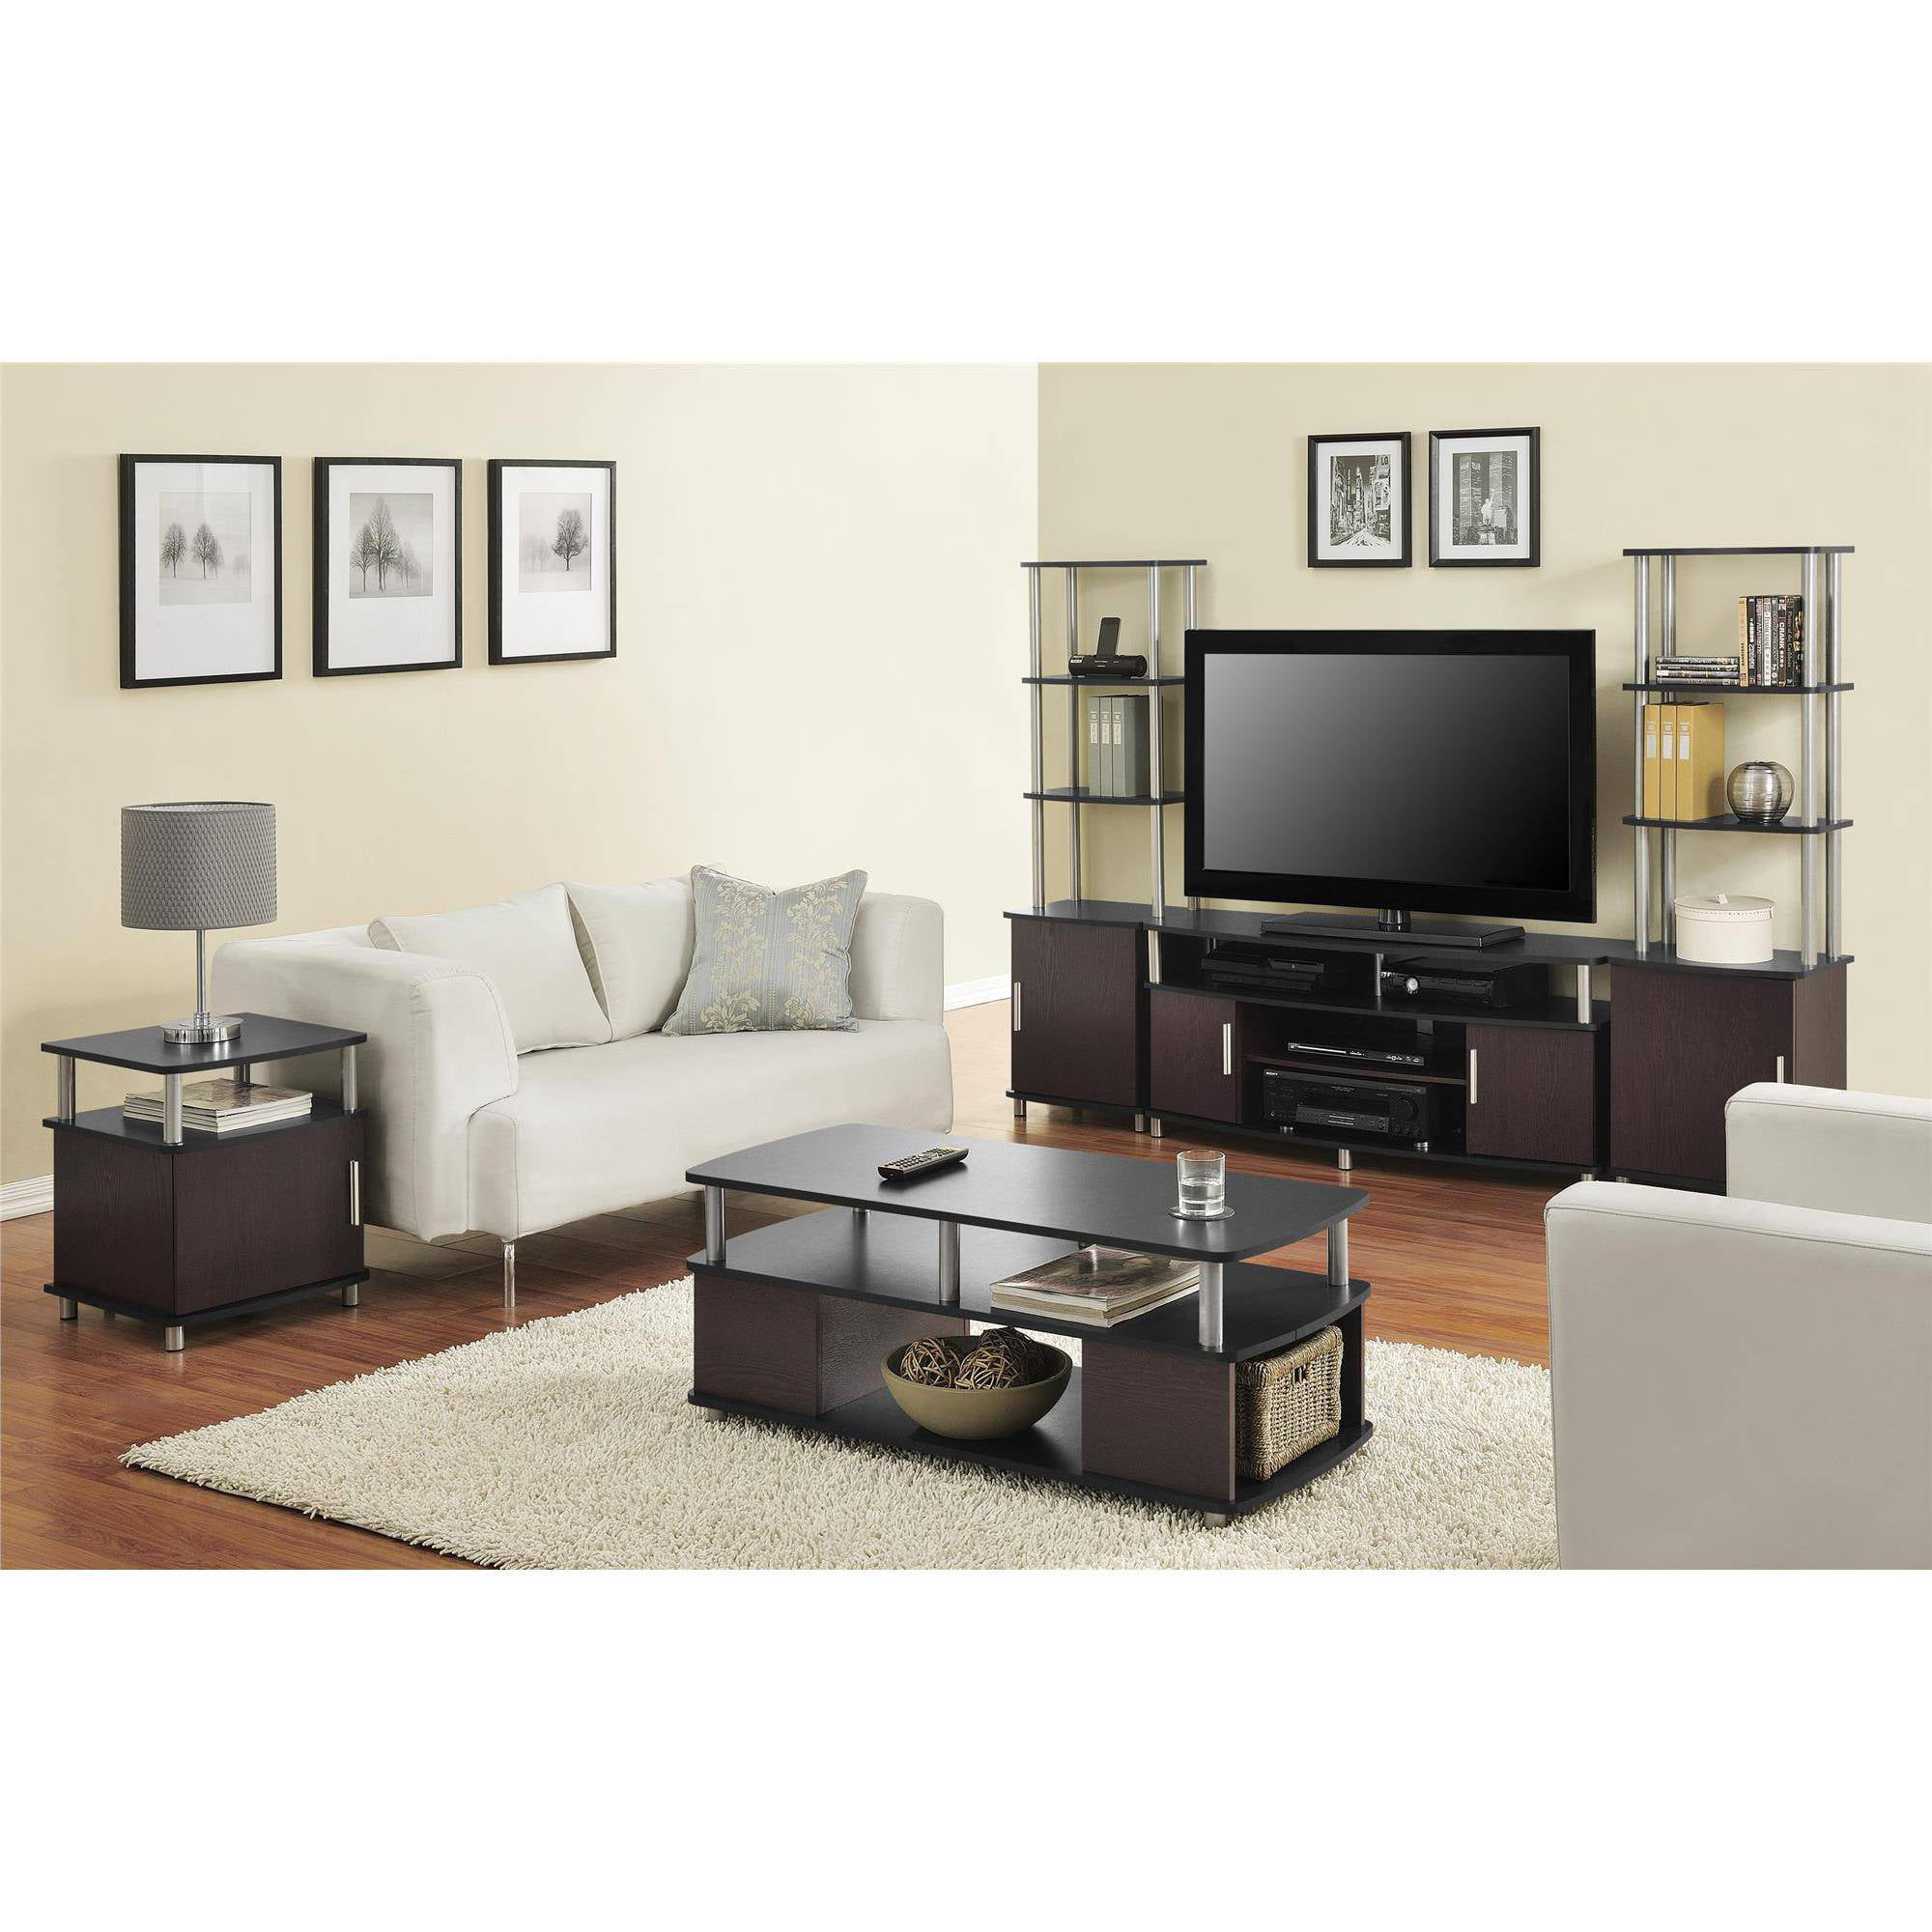 Ameriwood home carson coffee table espresso silver walmart com